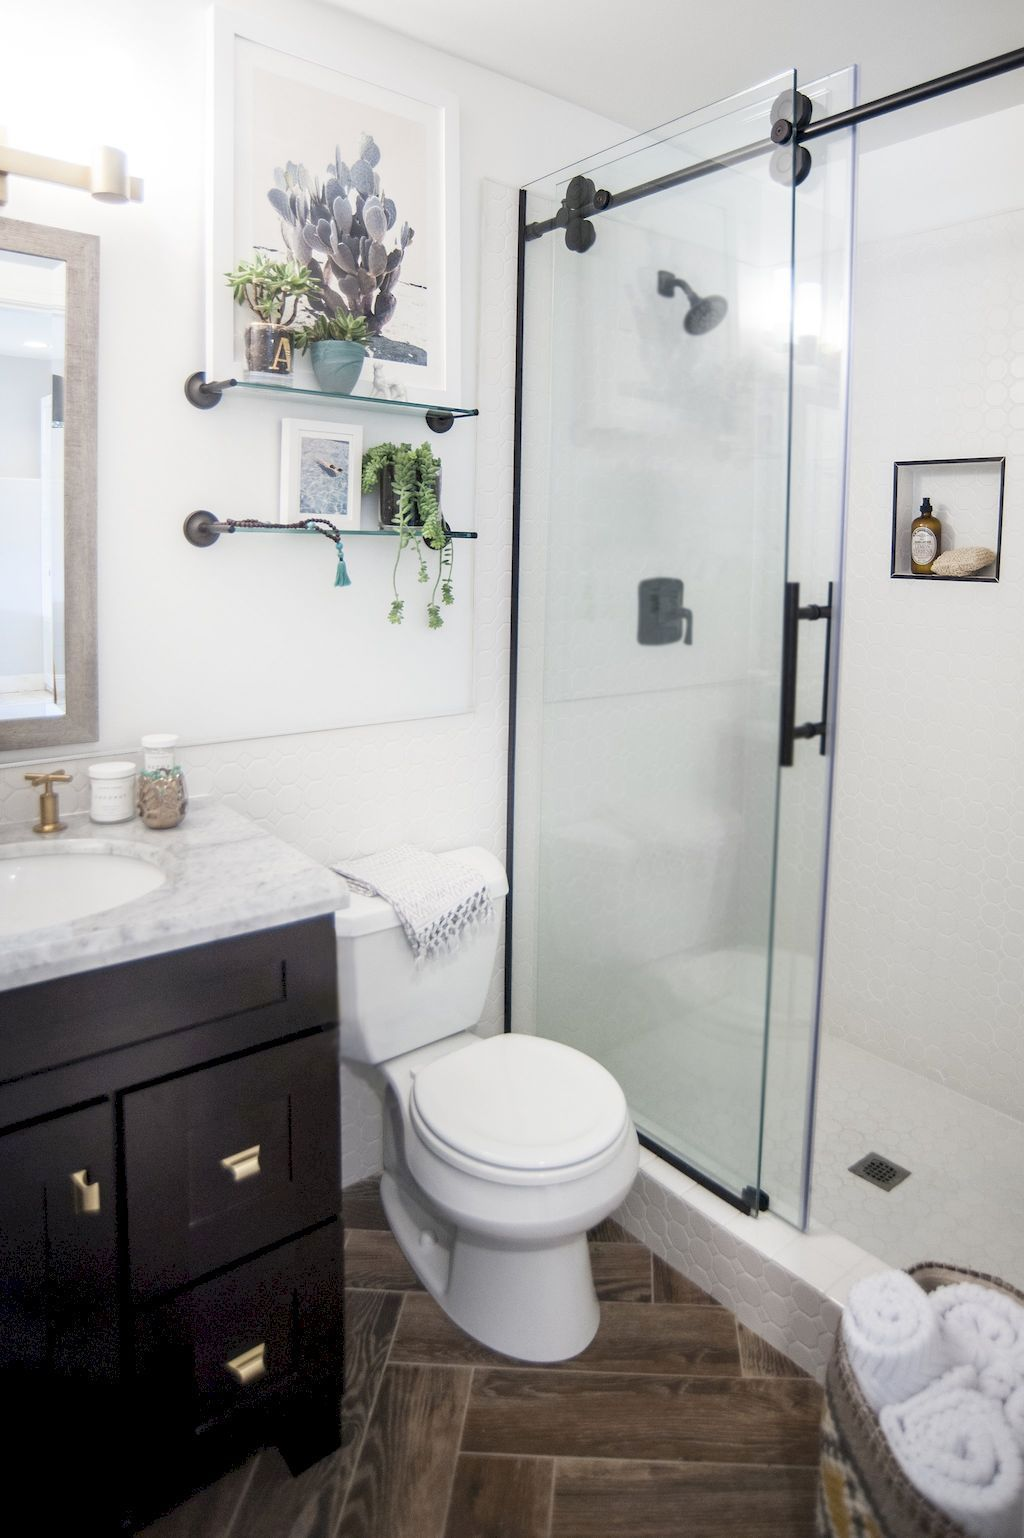 111 awesome small bathroom remodel ideas on a budget (109 ...